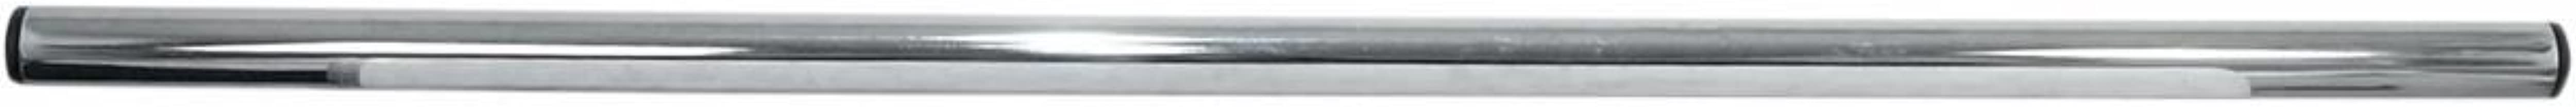 Emgo 1in. Street Broomstick Handlebar - Chrome , Color: Chrome, Handle Bar Size: 1in. 07-12567